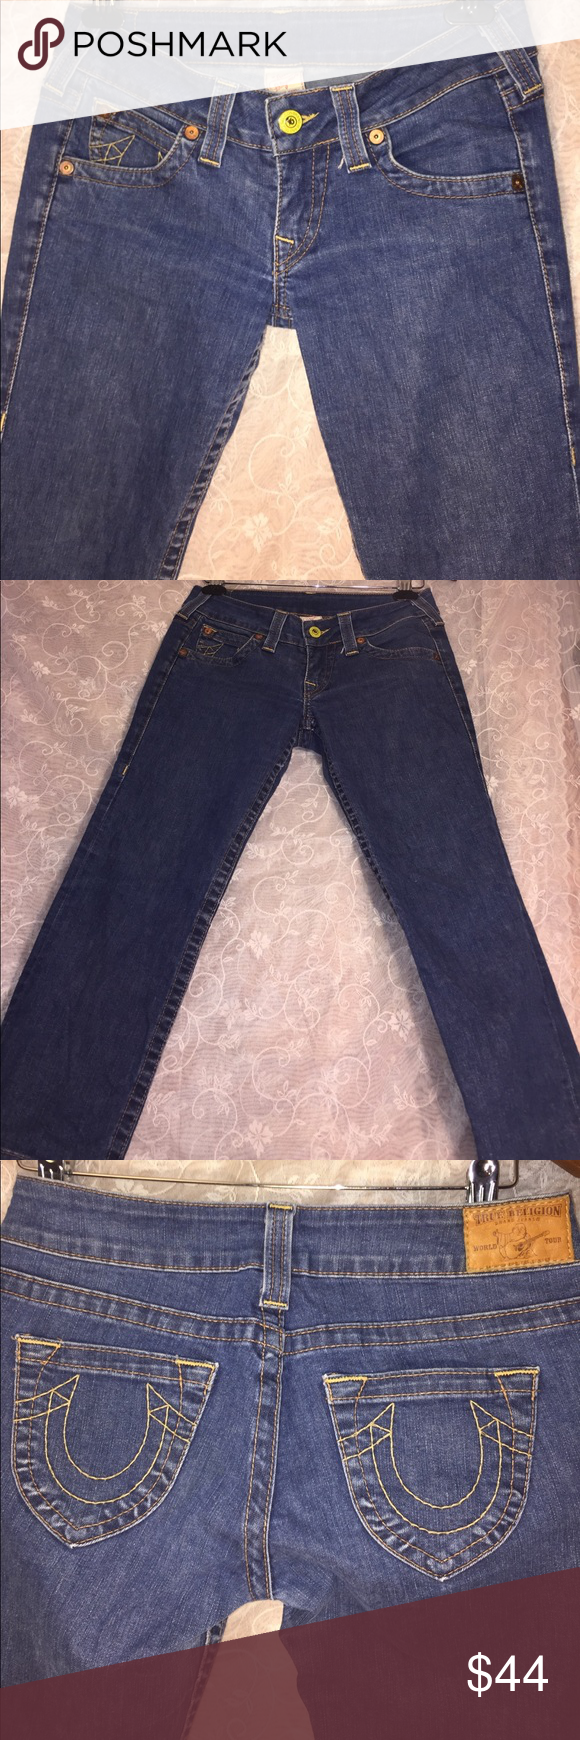 True Religion Brand Jeans Adorable ankle length low cut size 28 True Religion Brand Jeans. Perfect for all seasons and can pair with many different styles! Great with anklets, flats, sanders and mug more! True Religion Jeans Ankle & Cropped